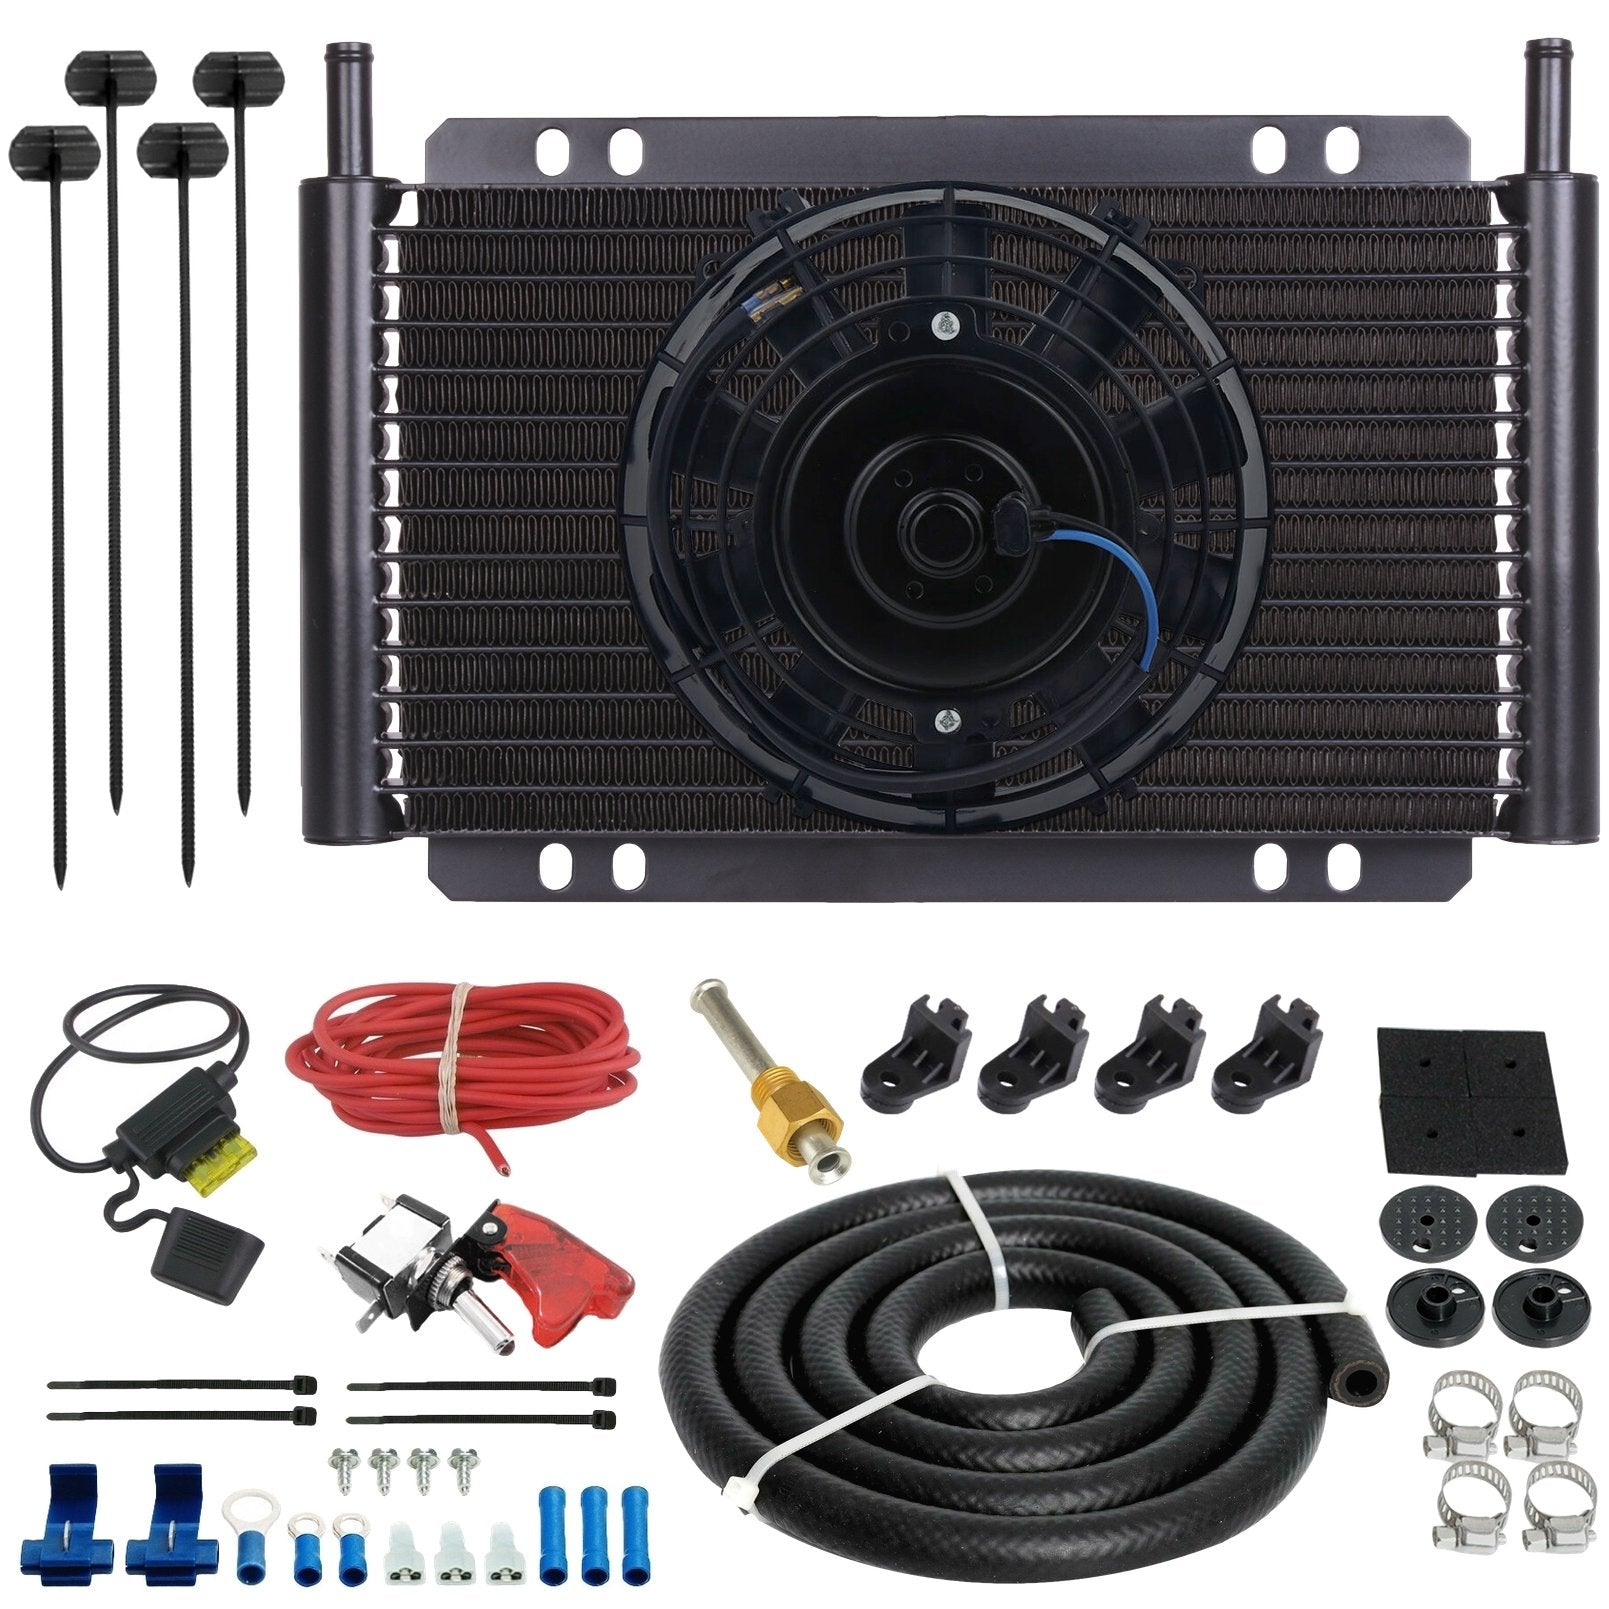 "17 Row Engine Transmission Oil Cooler 6"" Inch Electric Cooling Fan 12 Volt Red Toggle Switch Wiring Kit-Oil Cooler-American Volt-6AN-American Volt"